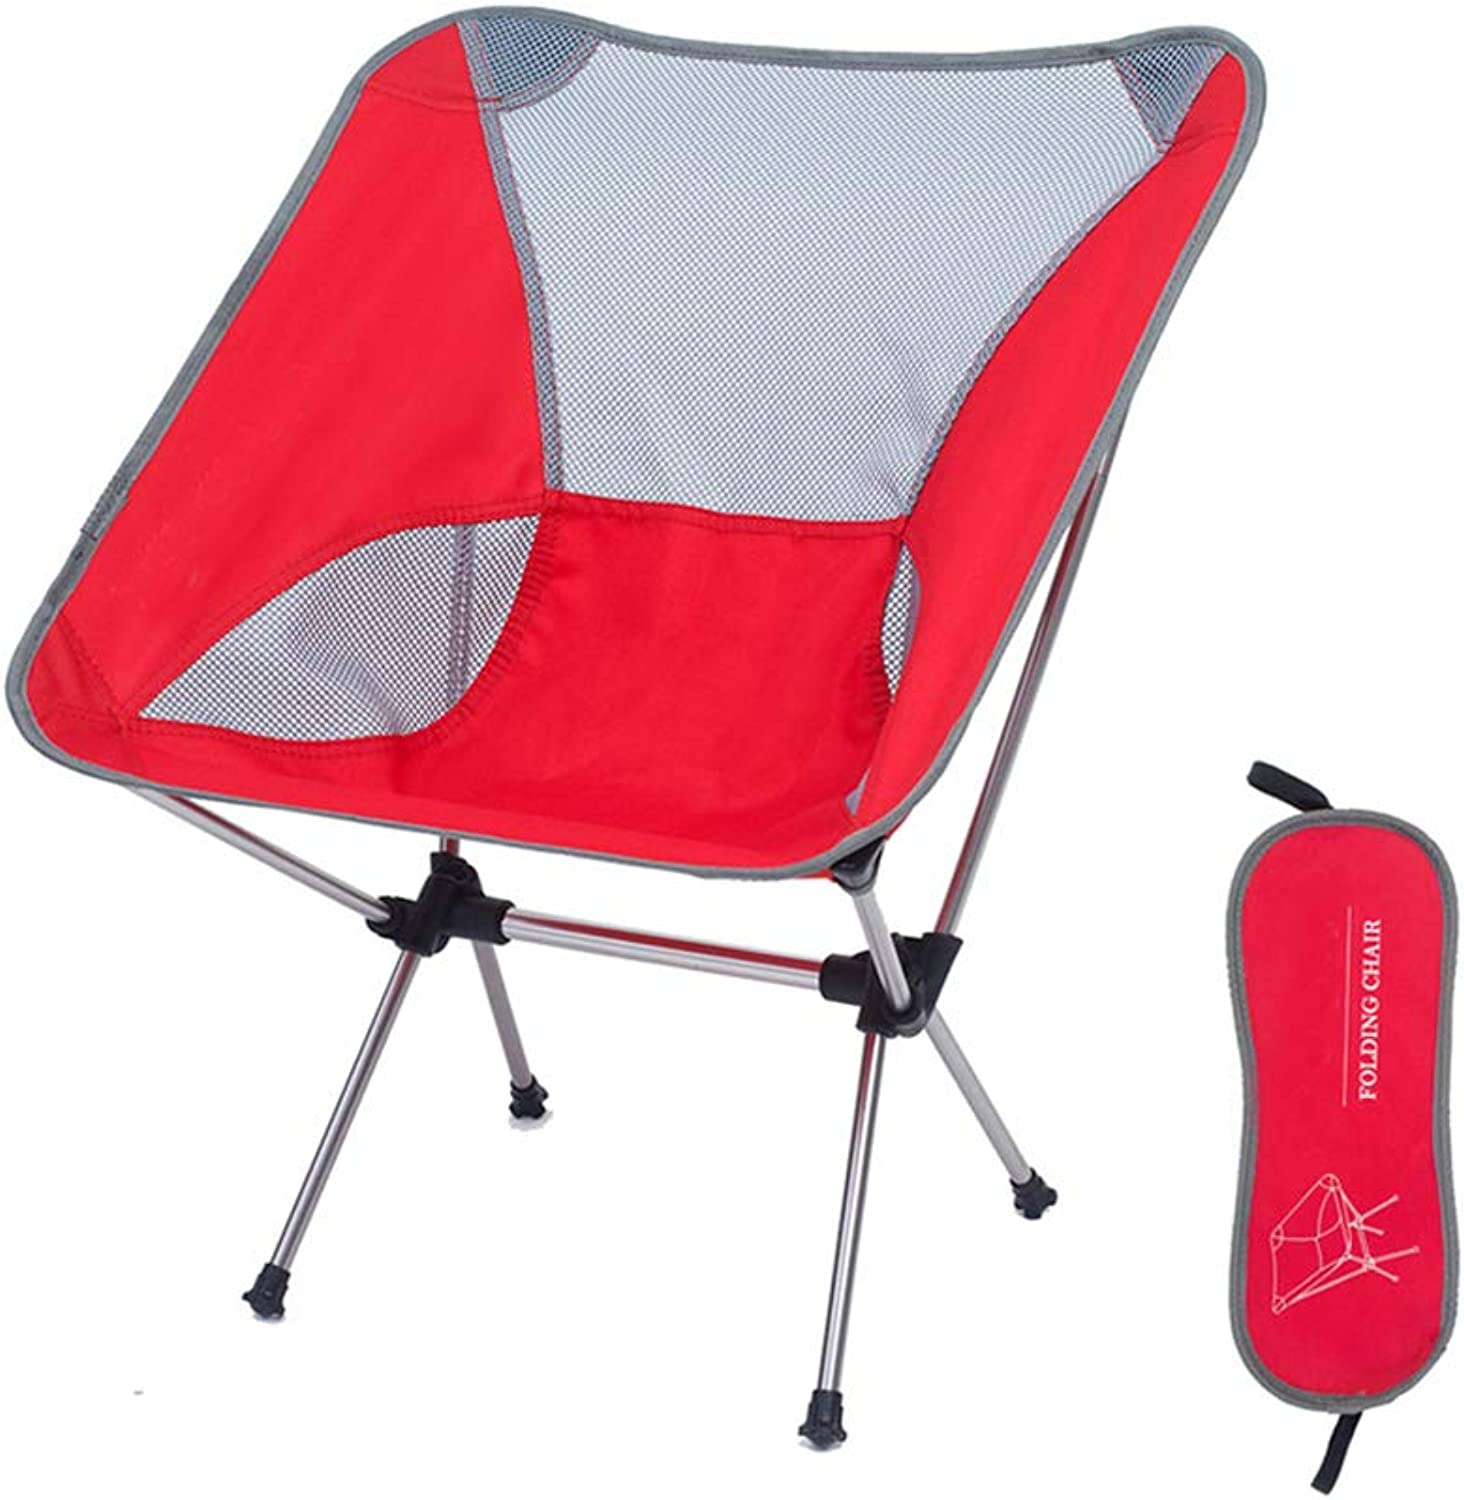 Ultra Light Portable Folding Outdoor Solid color Garden Fishing Camping Chair with Storage Bag